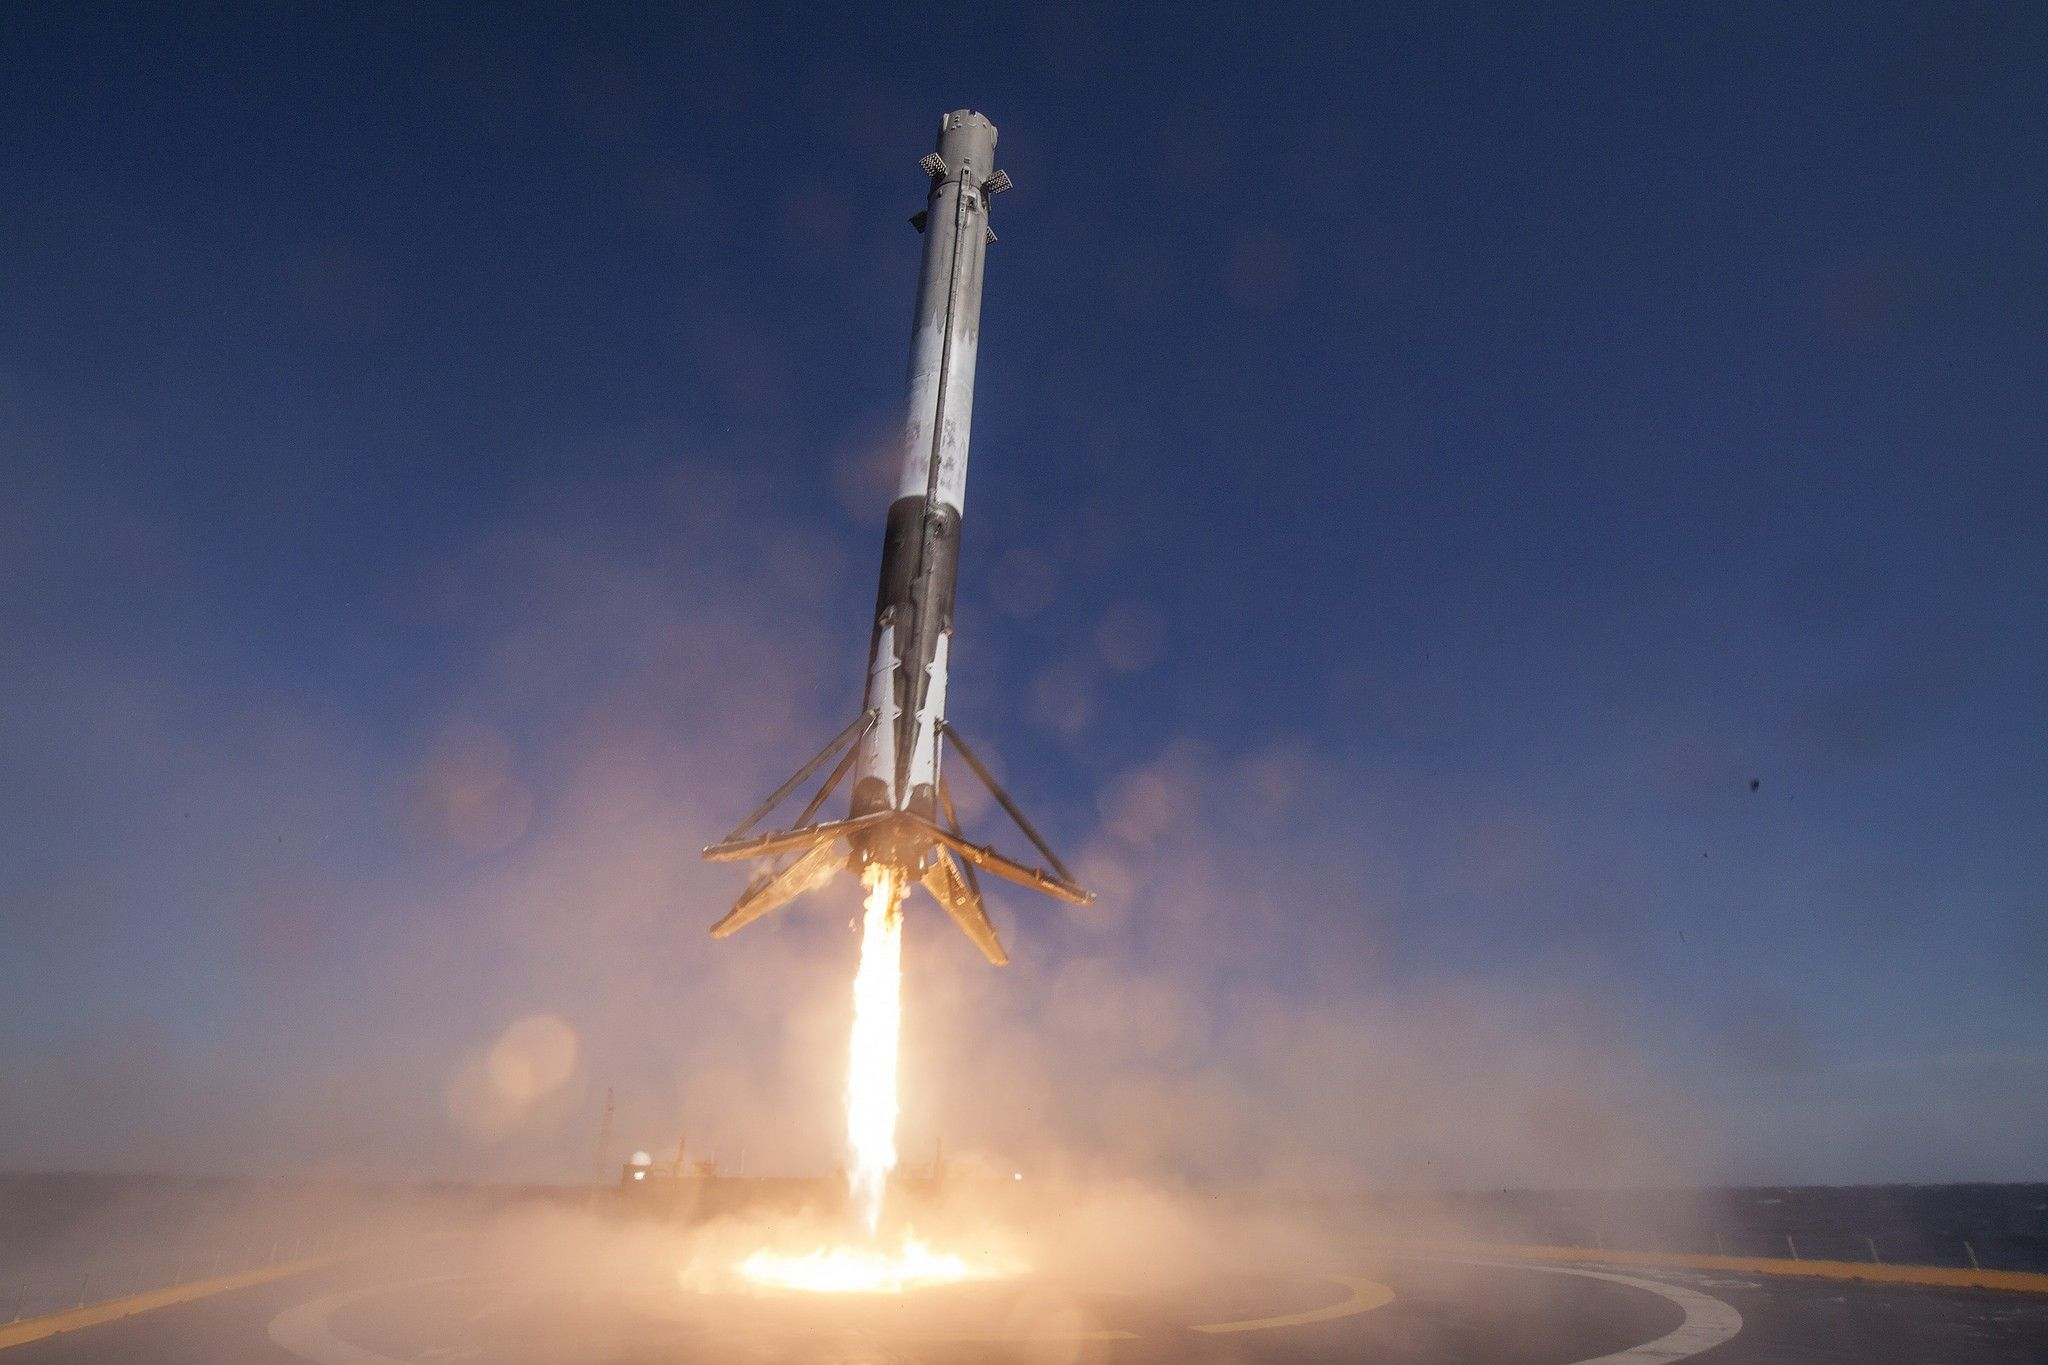 flickr.com/SpaceX